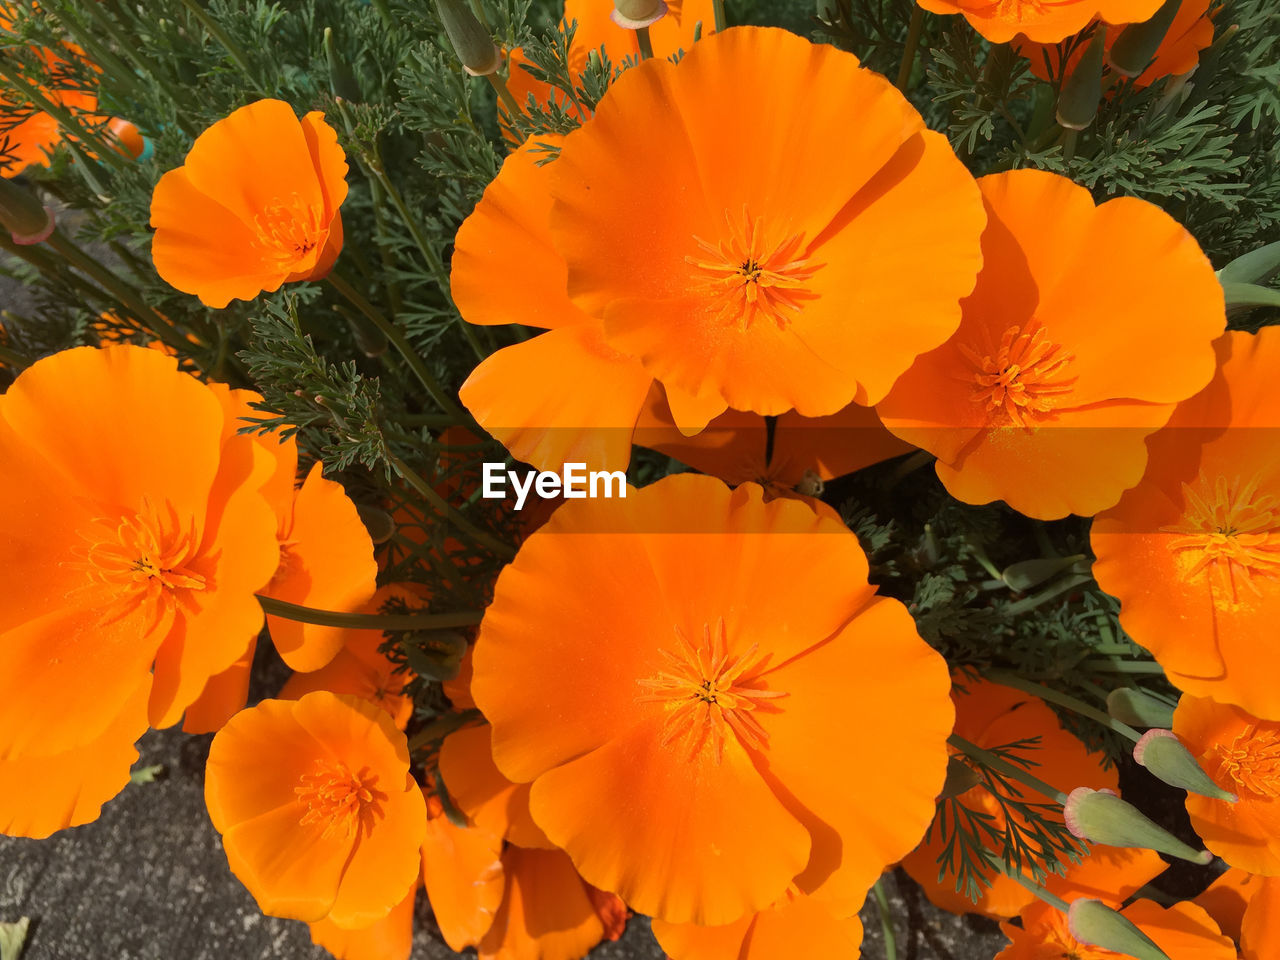 orange color, flower, petal, beauty in nature, flower head, fragility, nature, freshness, growth, plant, outdoors, no people, day, blooming, close-up, hibiscus